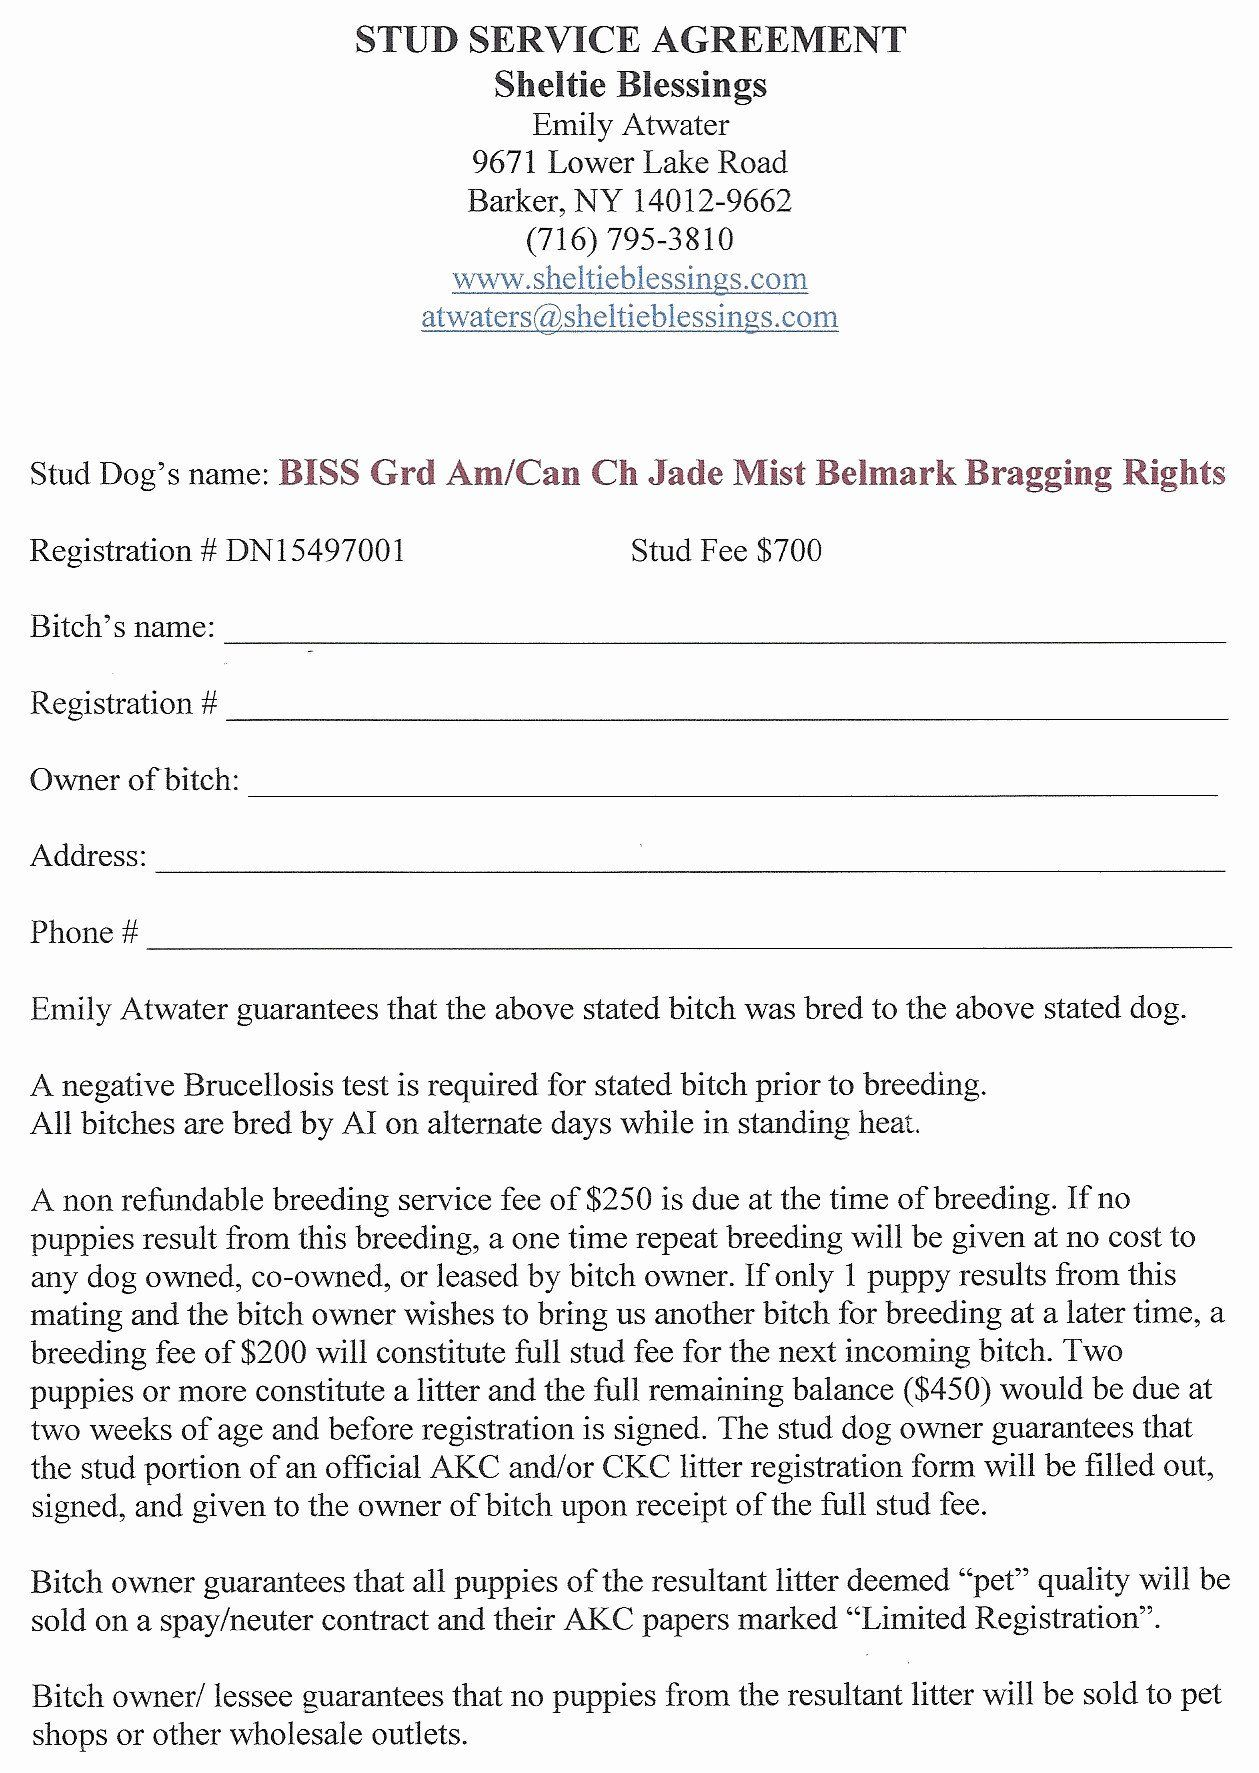 Dog Breeding Contract Template Unique Spay And Neuter Contract Template Paramythia Docs In 2020 Contract Template Stud Dog Contract